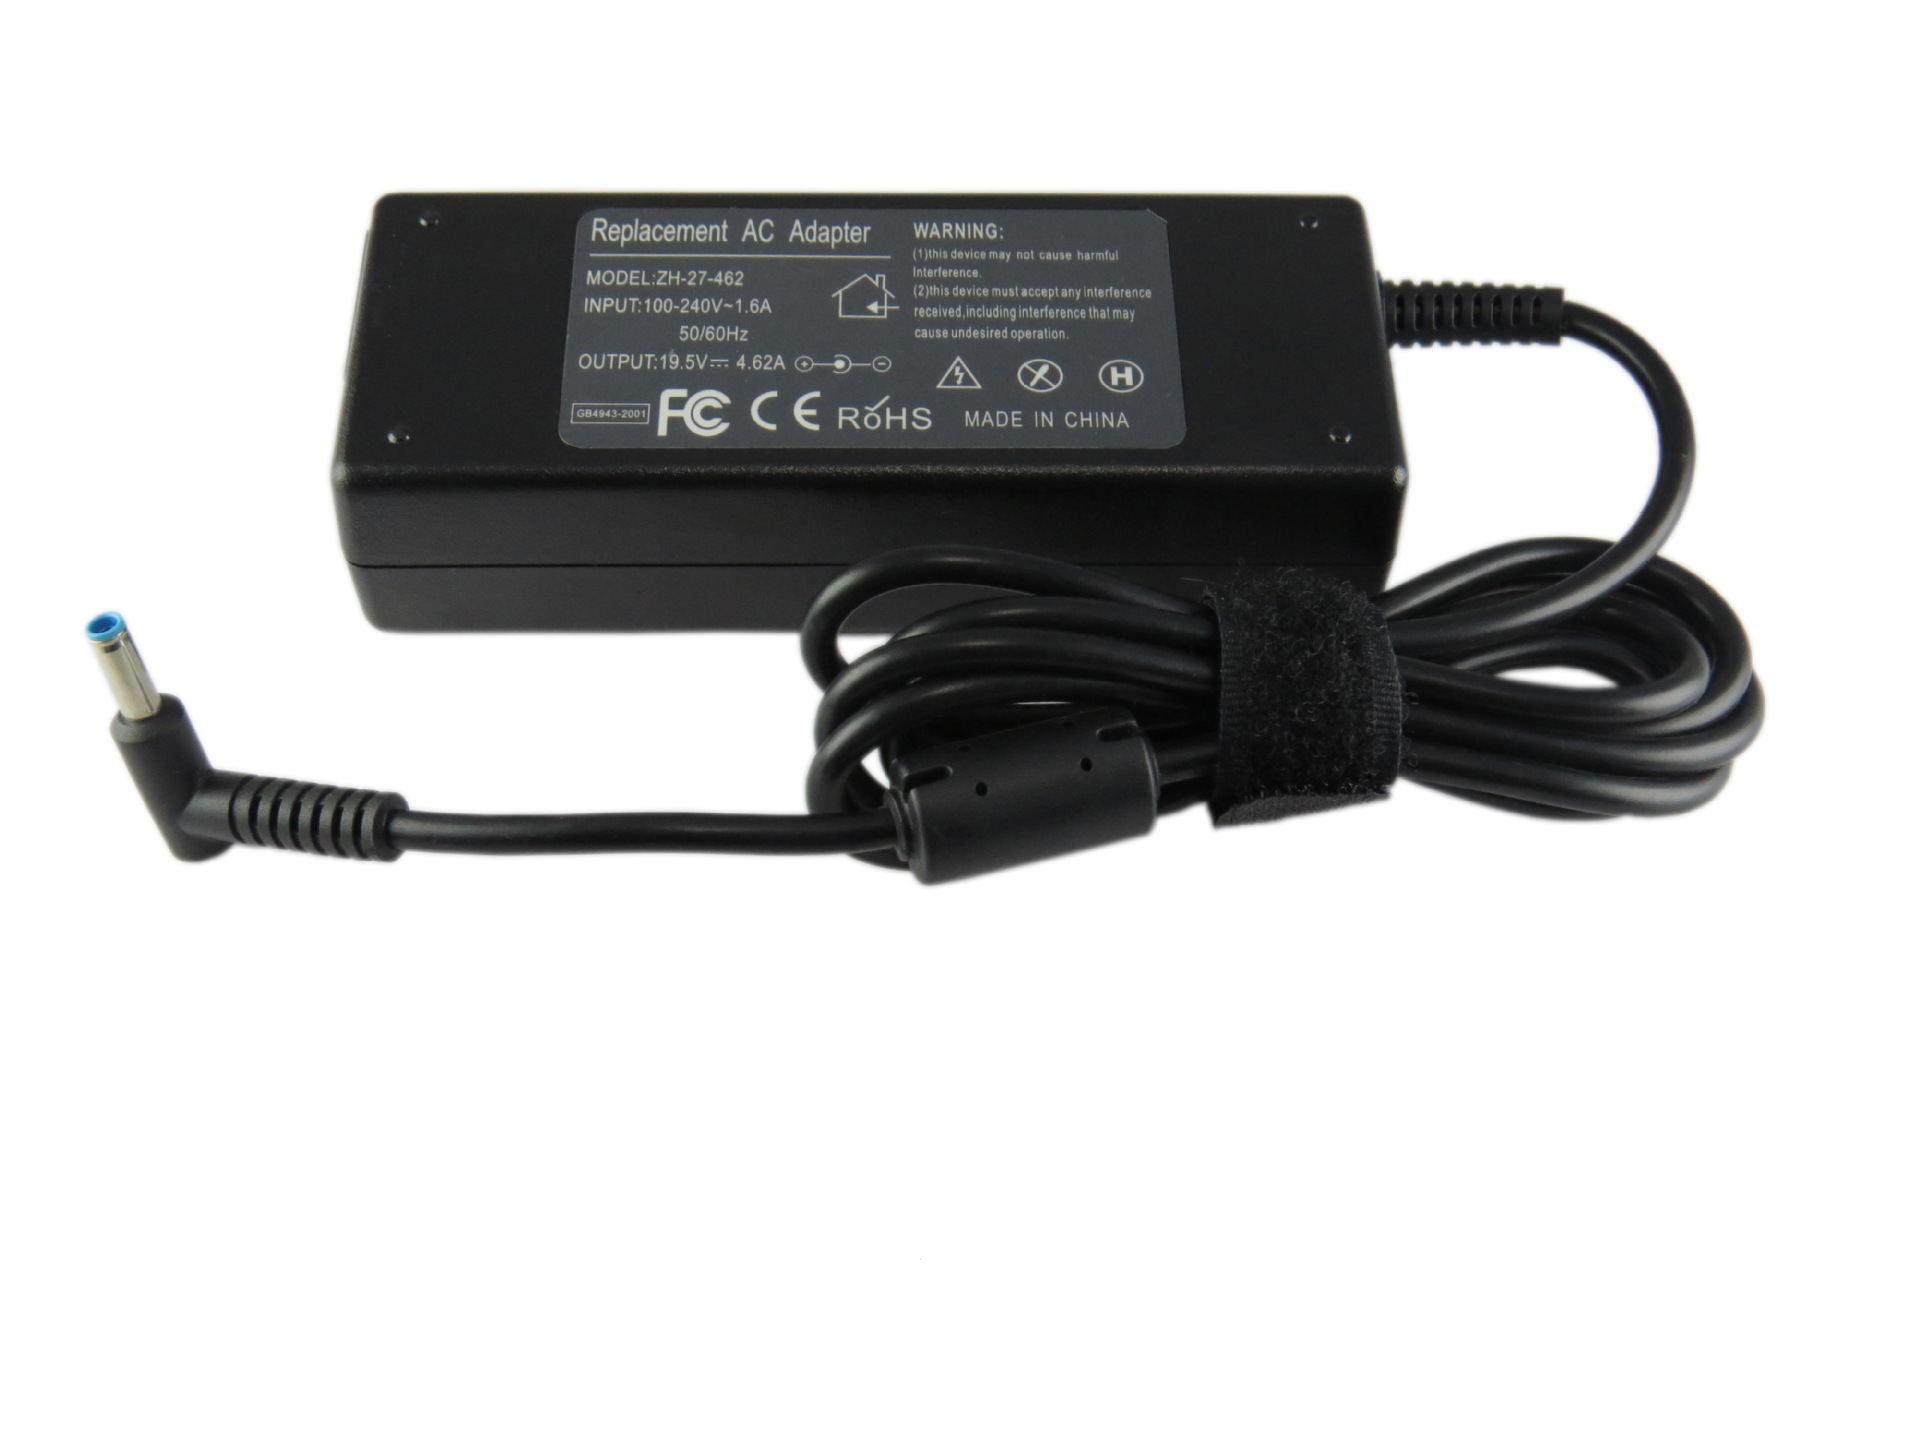 19.5V 4.62A 90W Laptop Ac Power Adapter Oplader voor Dell Xps 13 12 Ultrabook Small Round Pin Factory Direct van hoge kwaliteit